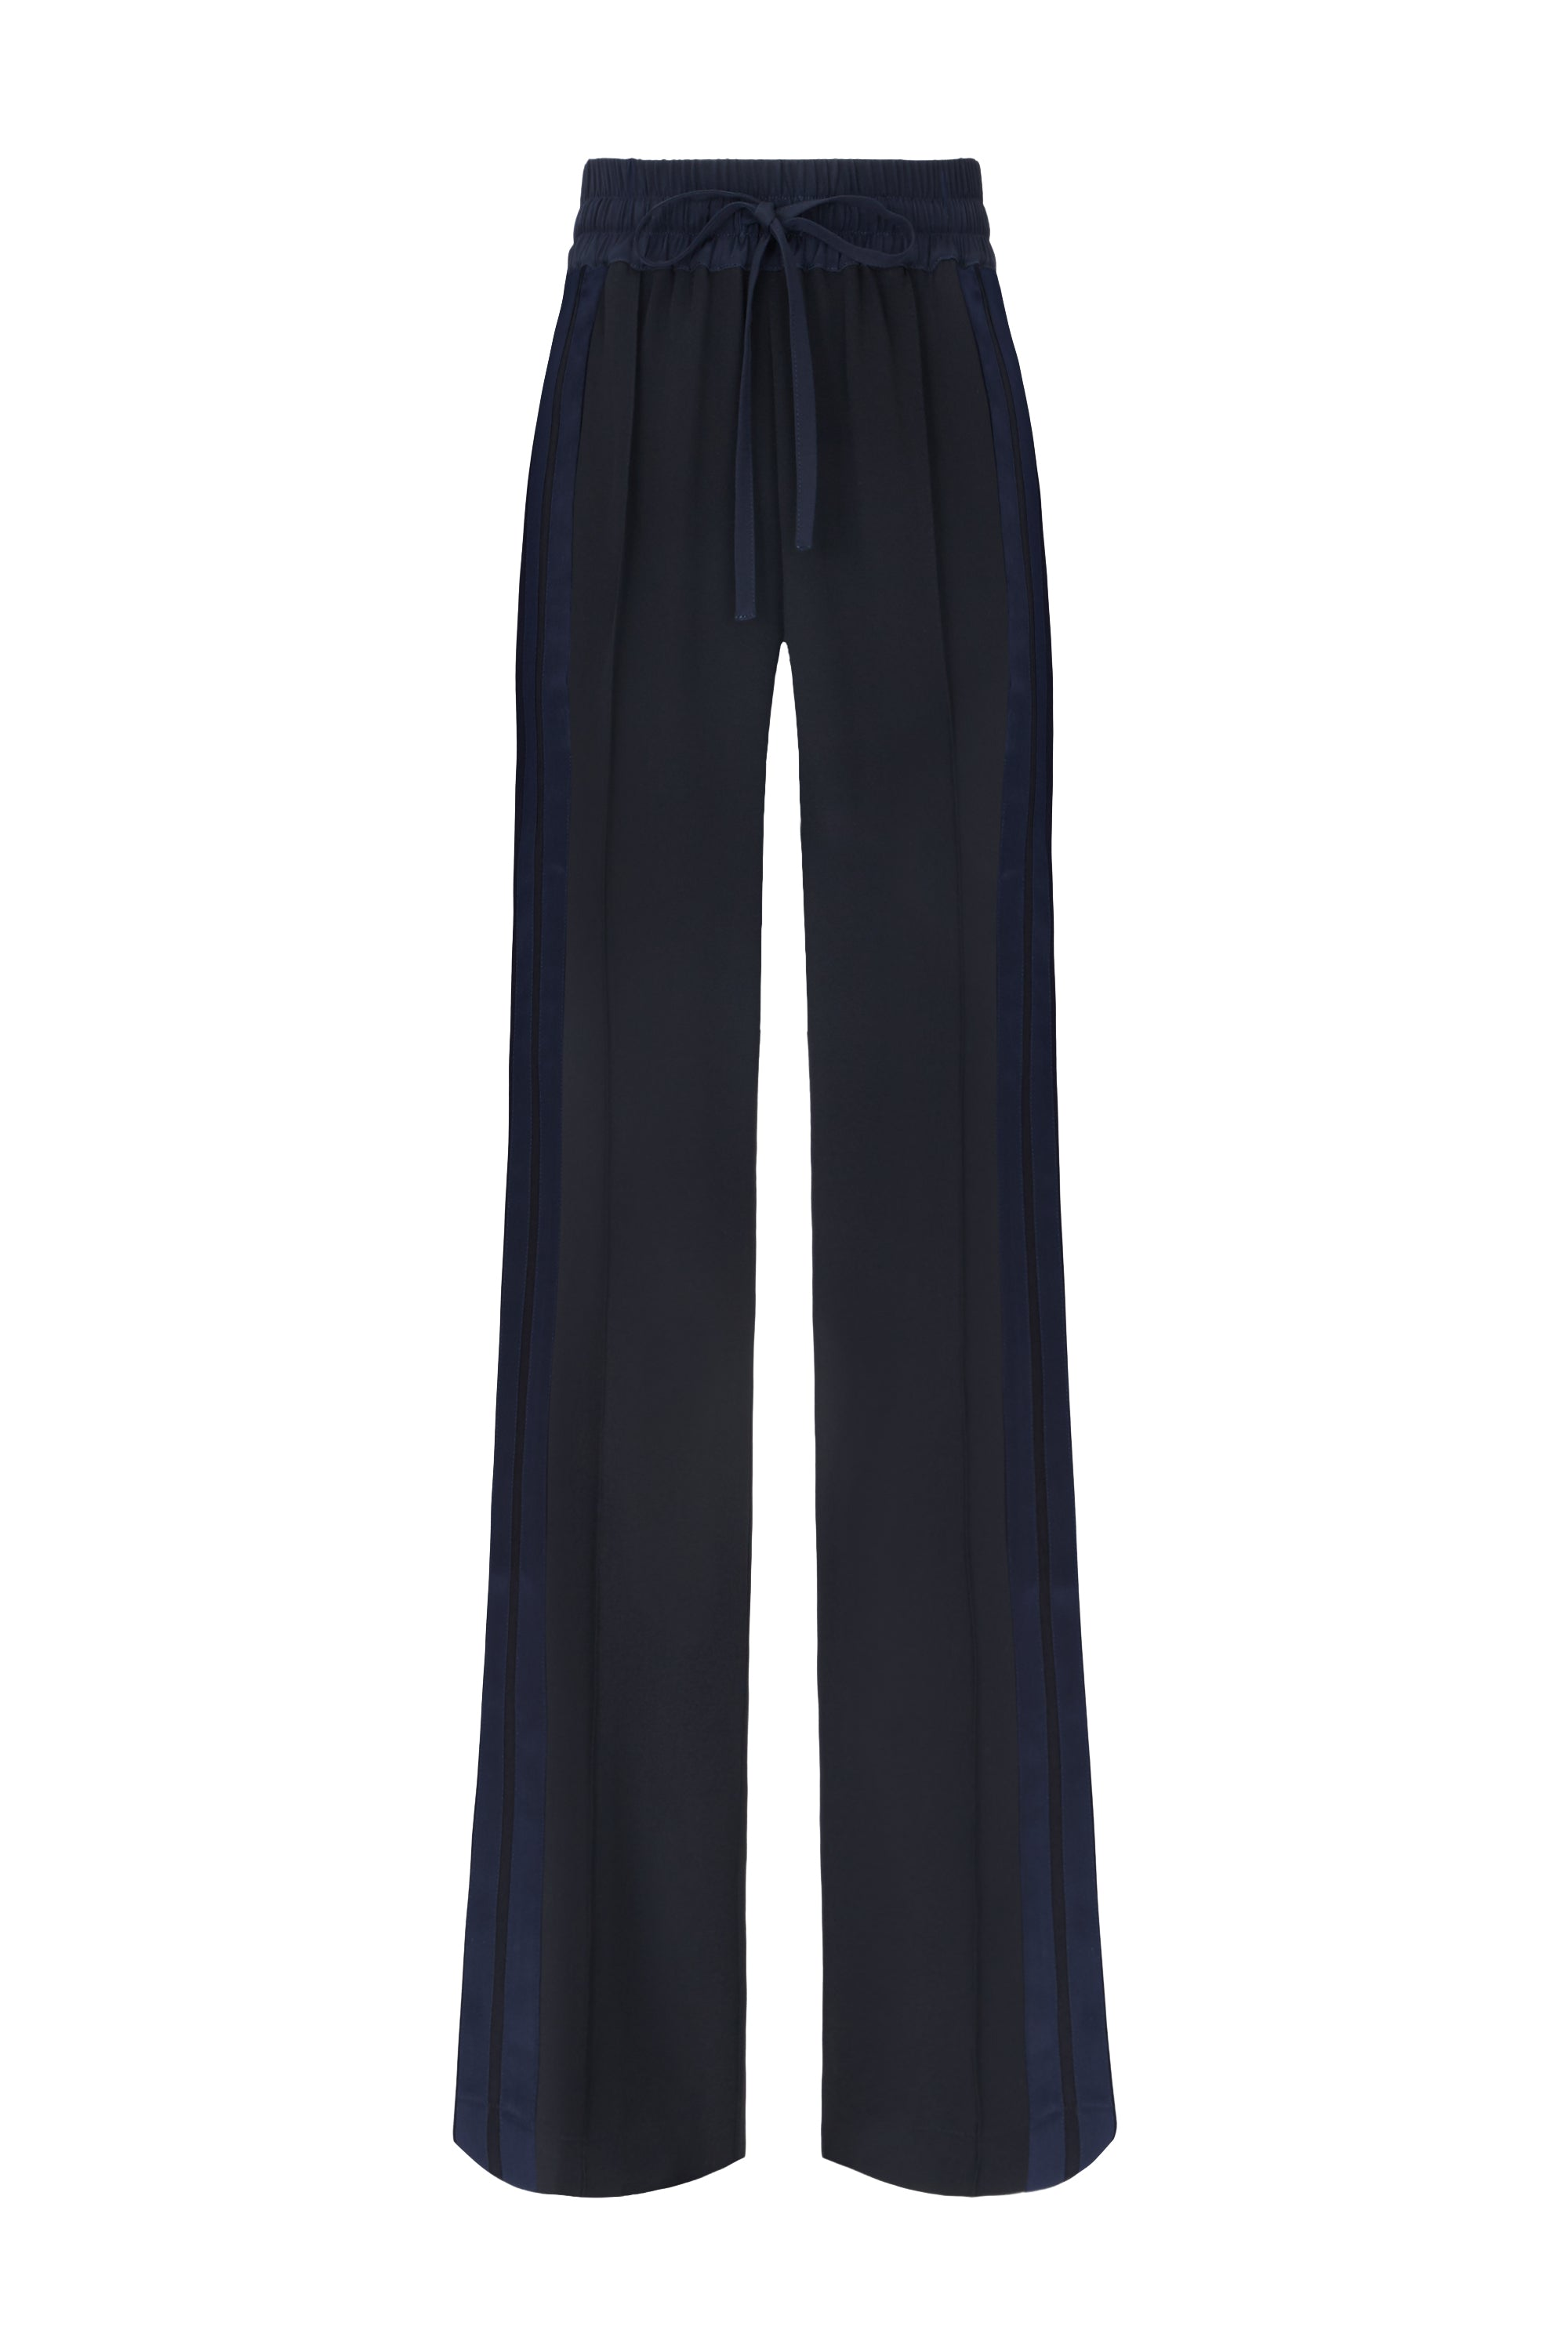 The Skinny Jogger - Black & Navy Silk - SERENA BUTE